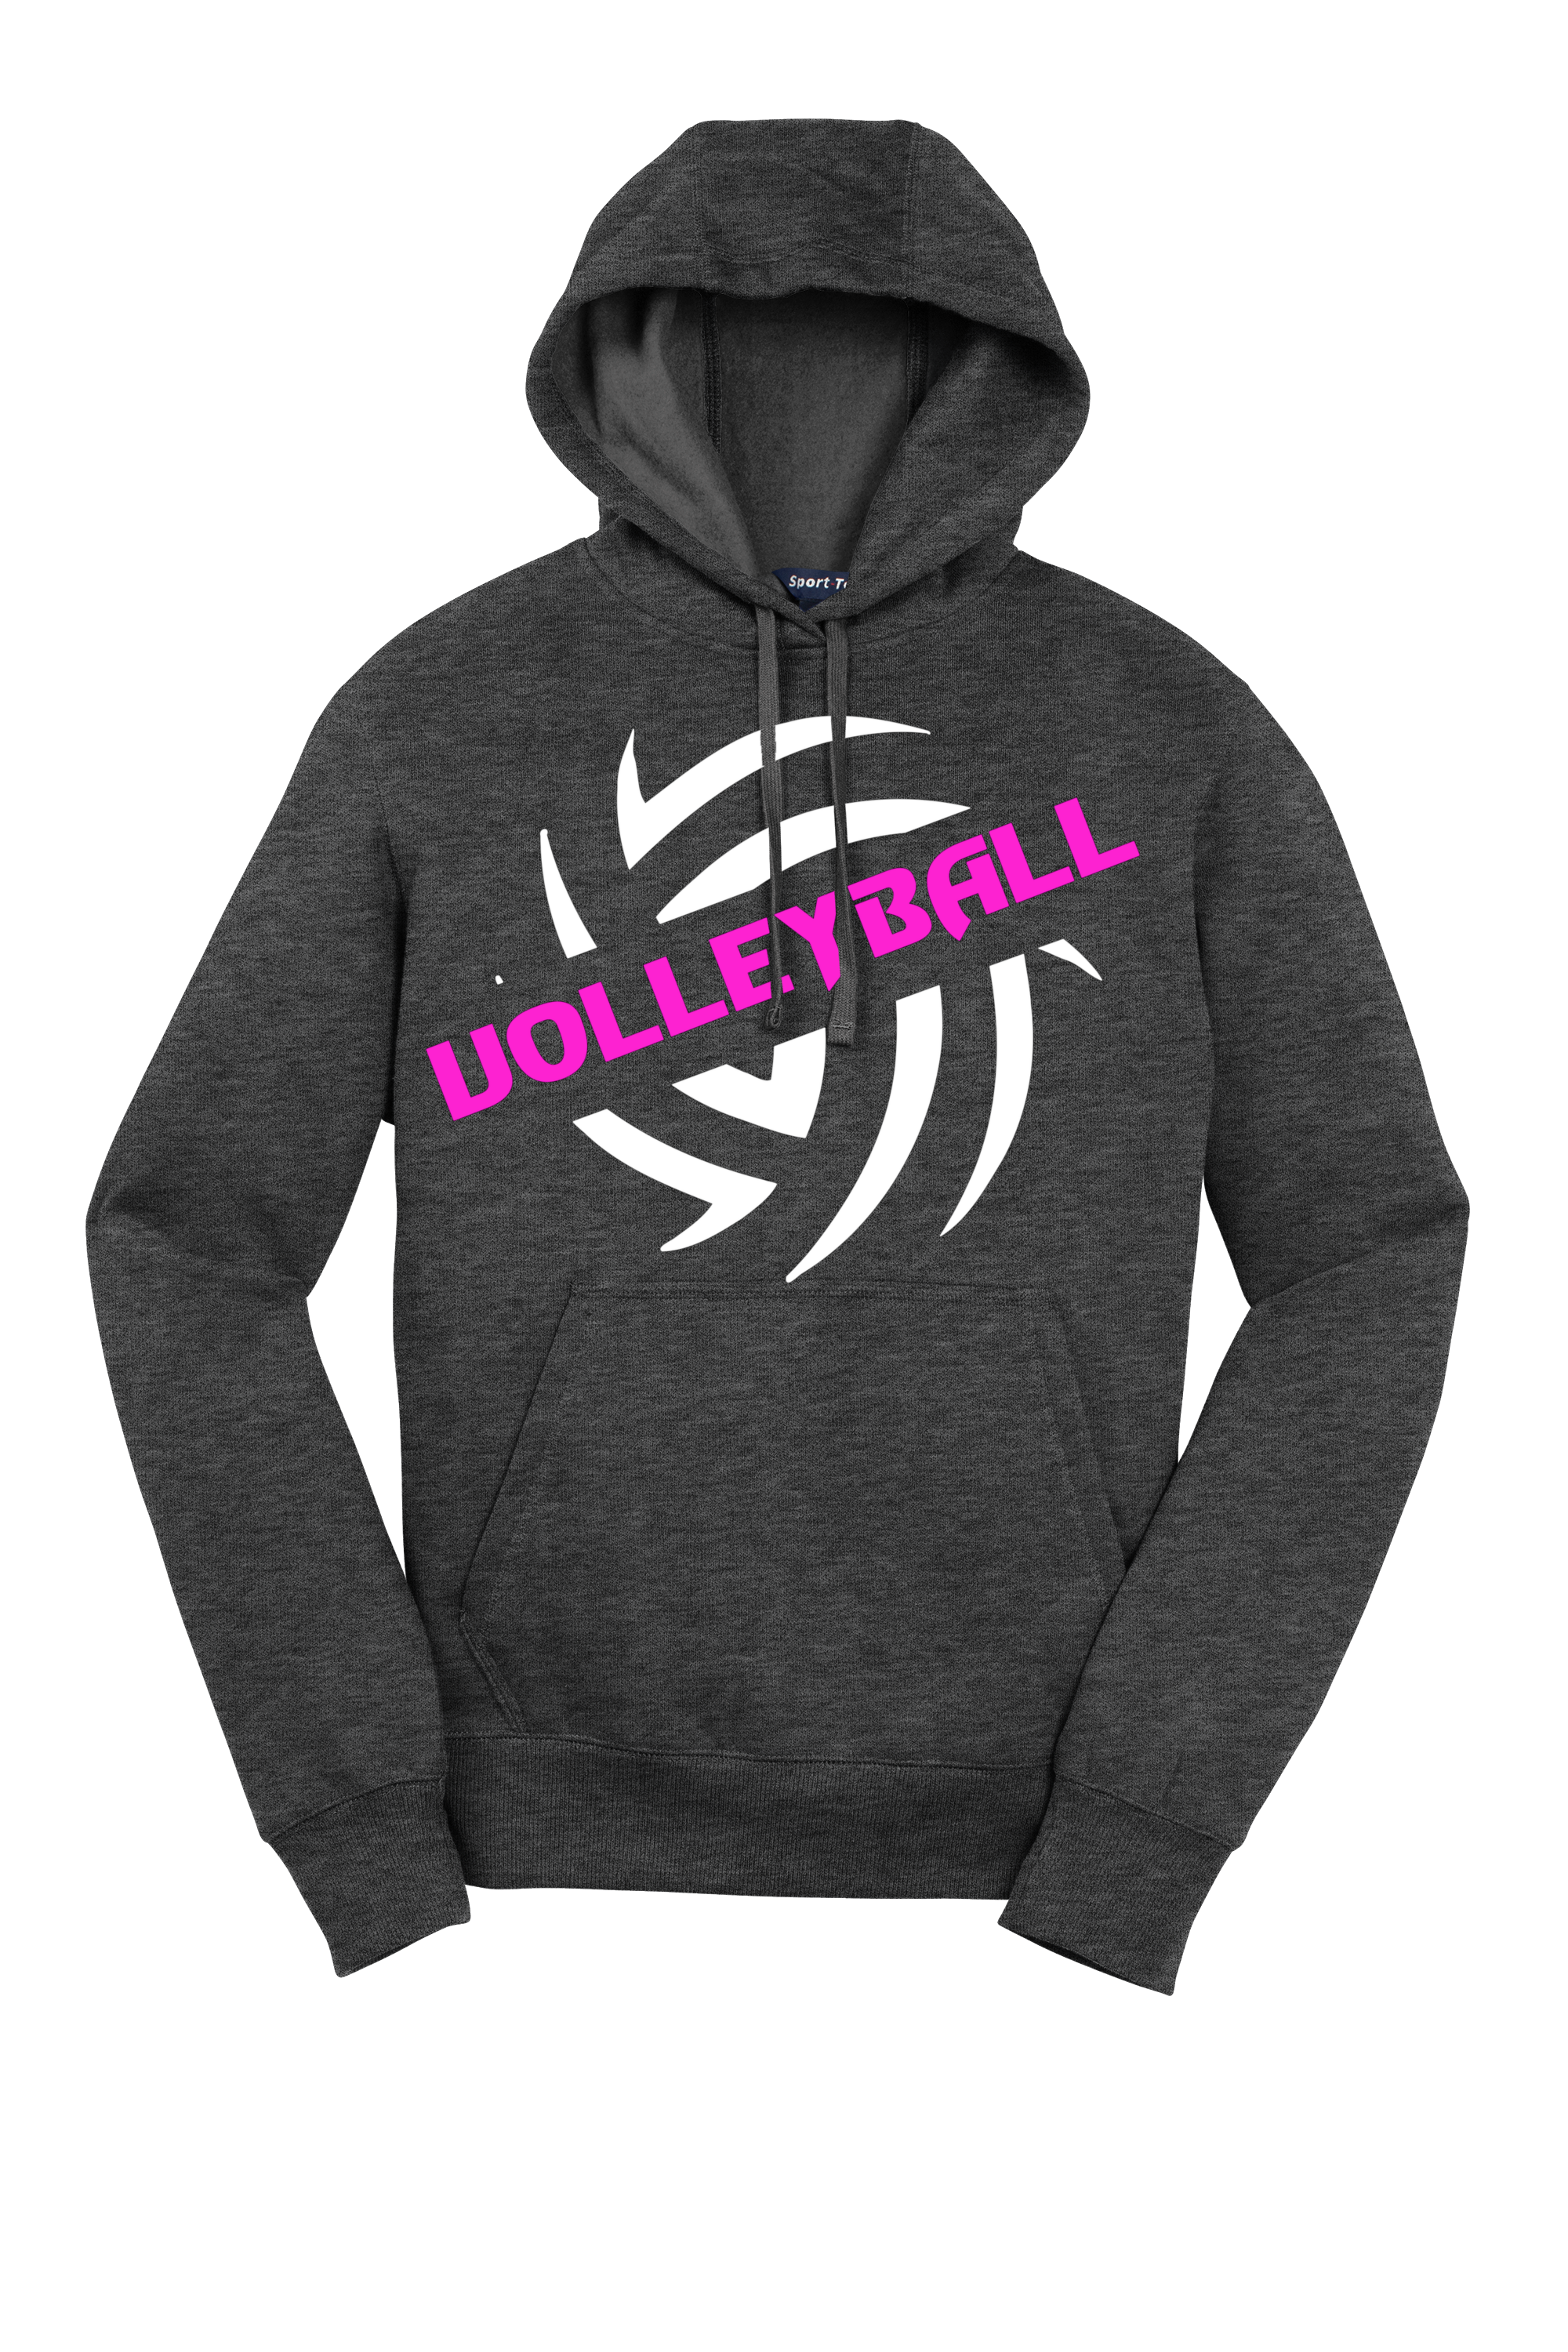 Volleyball Cotton Pullover Hoodie Cotton Pullover Hoodies Pullover Hoodie